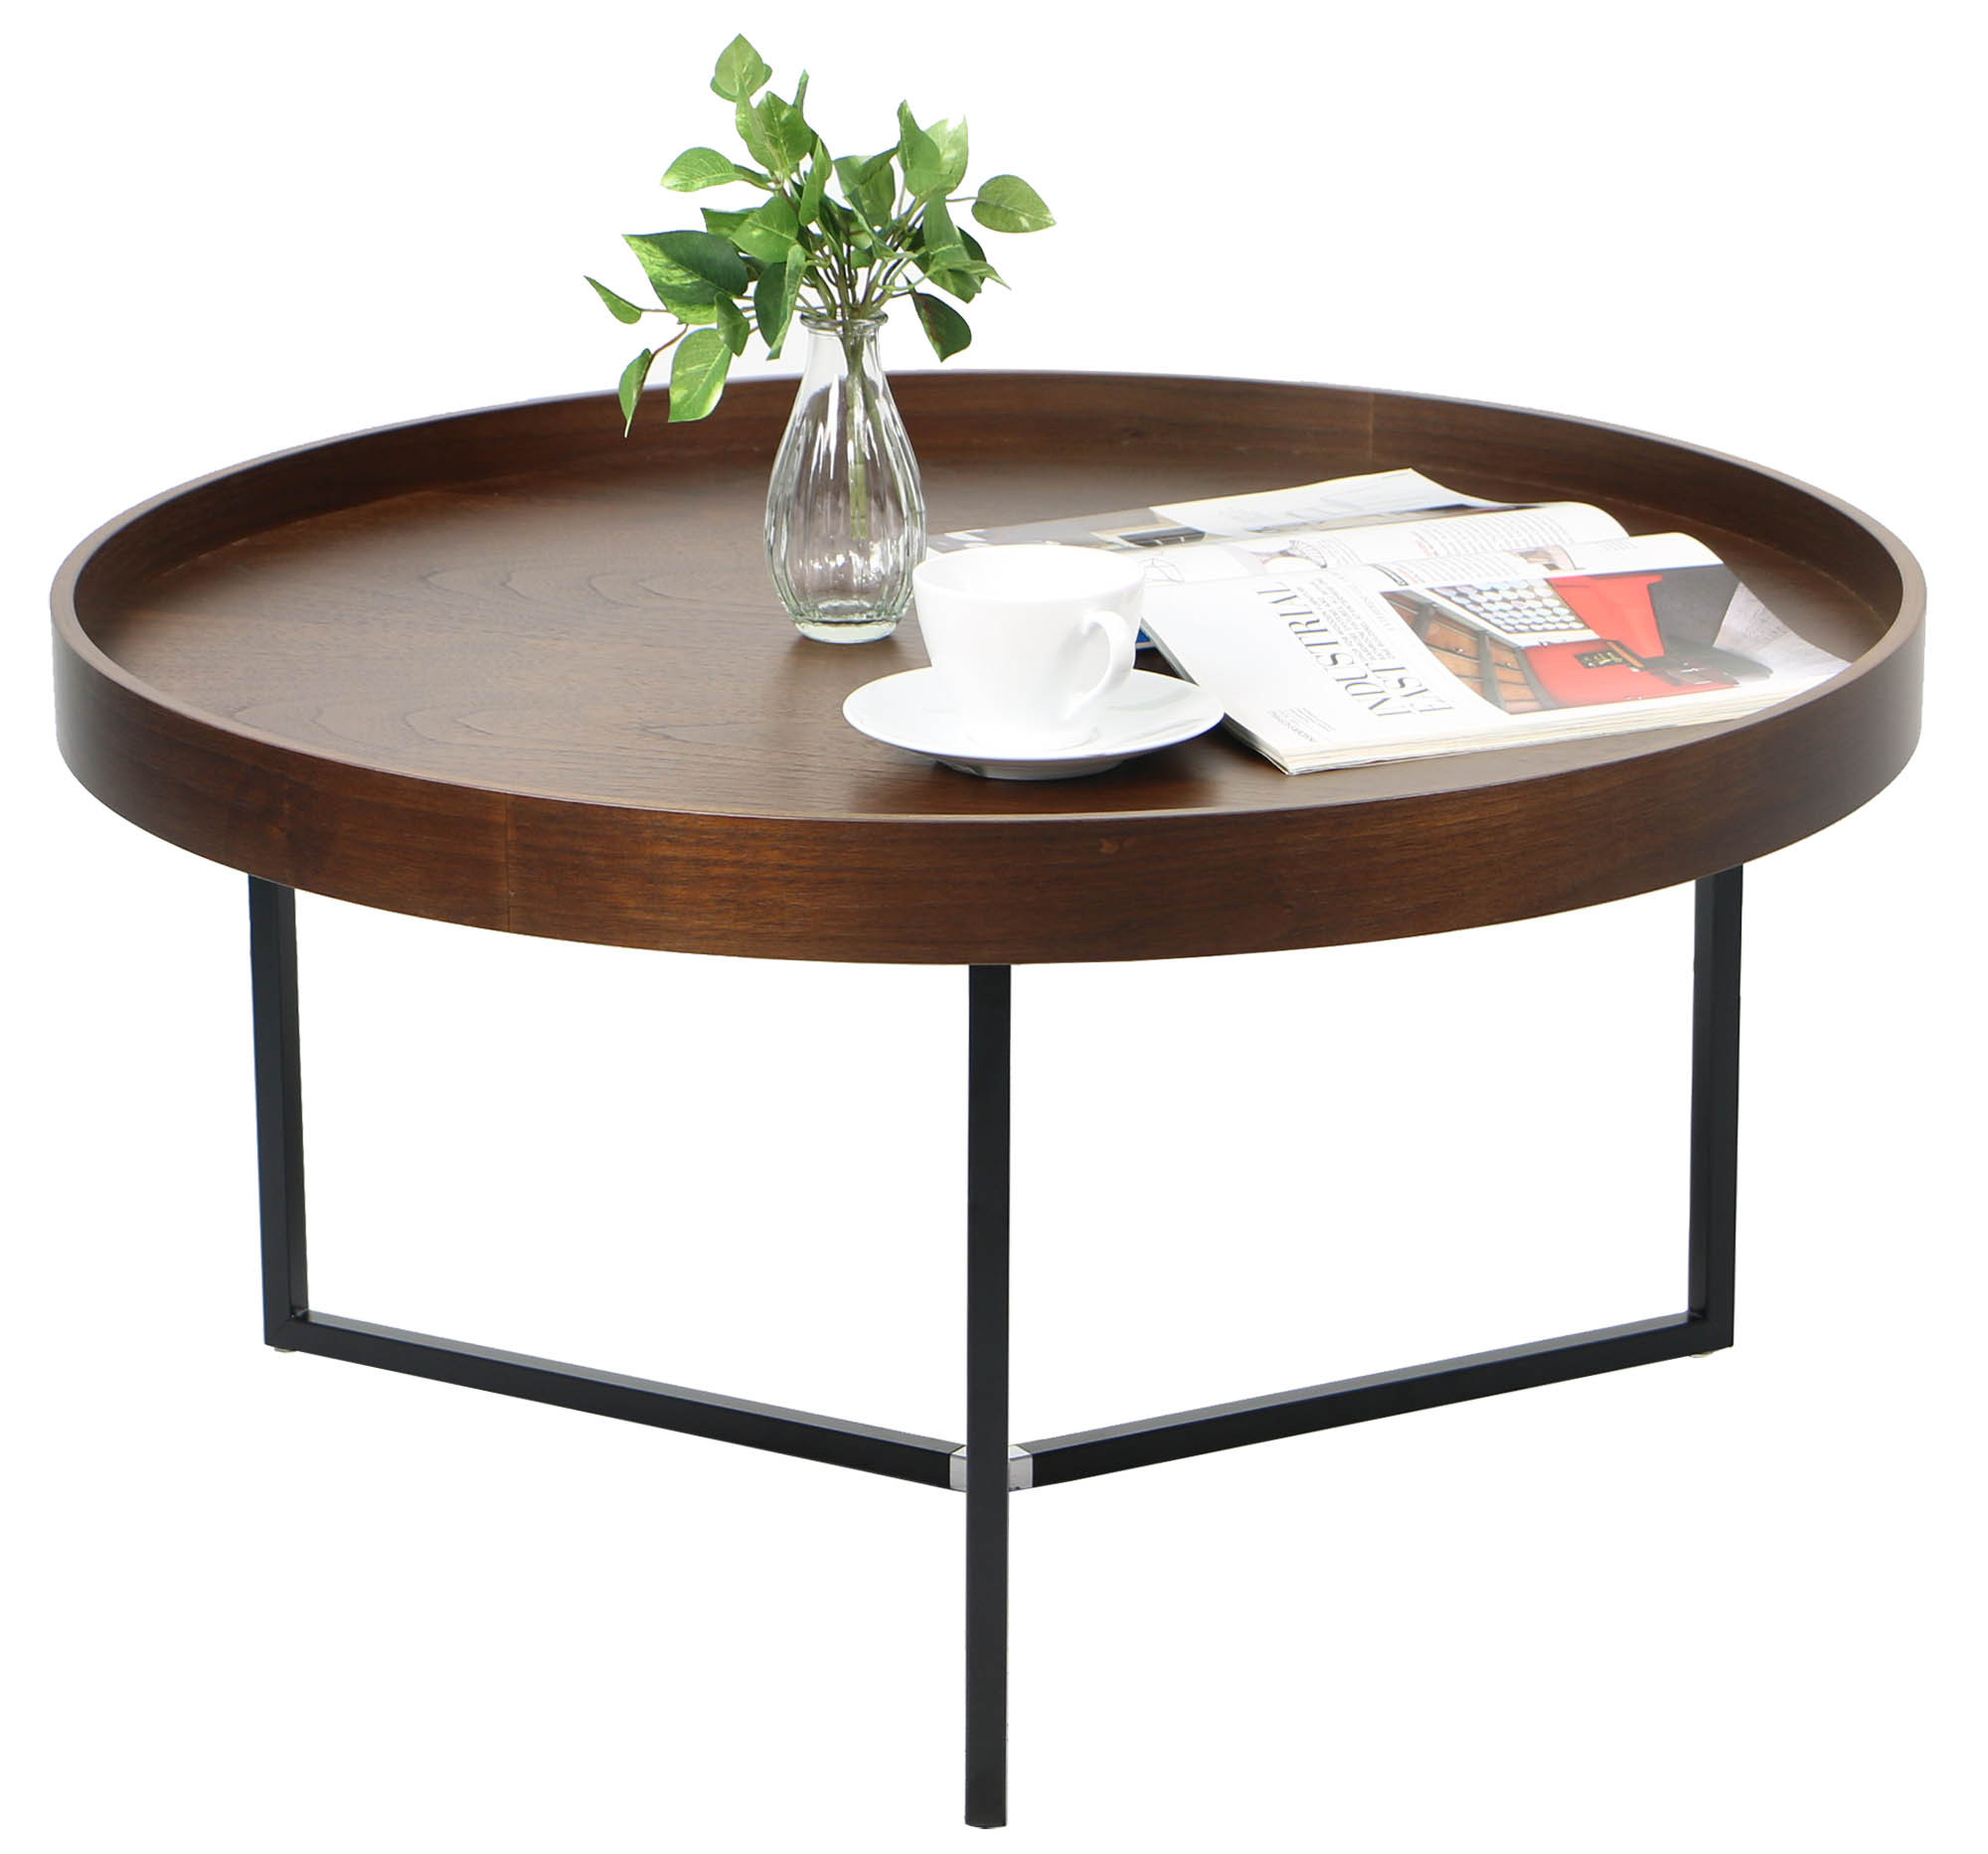 Round Coffee Table With Storage Singapore: Barrie Walnut Round Tray Table